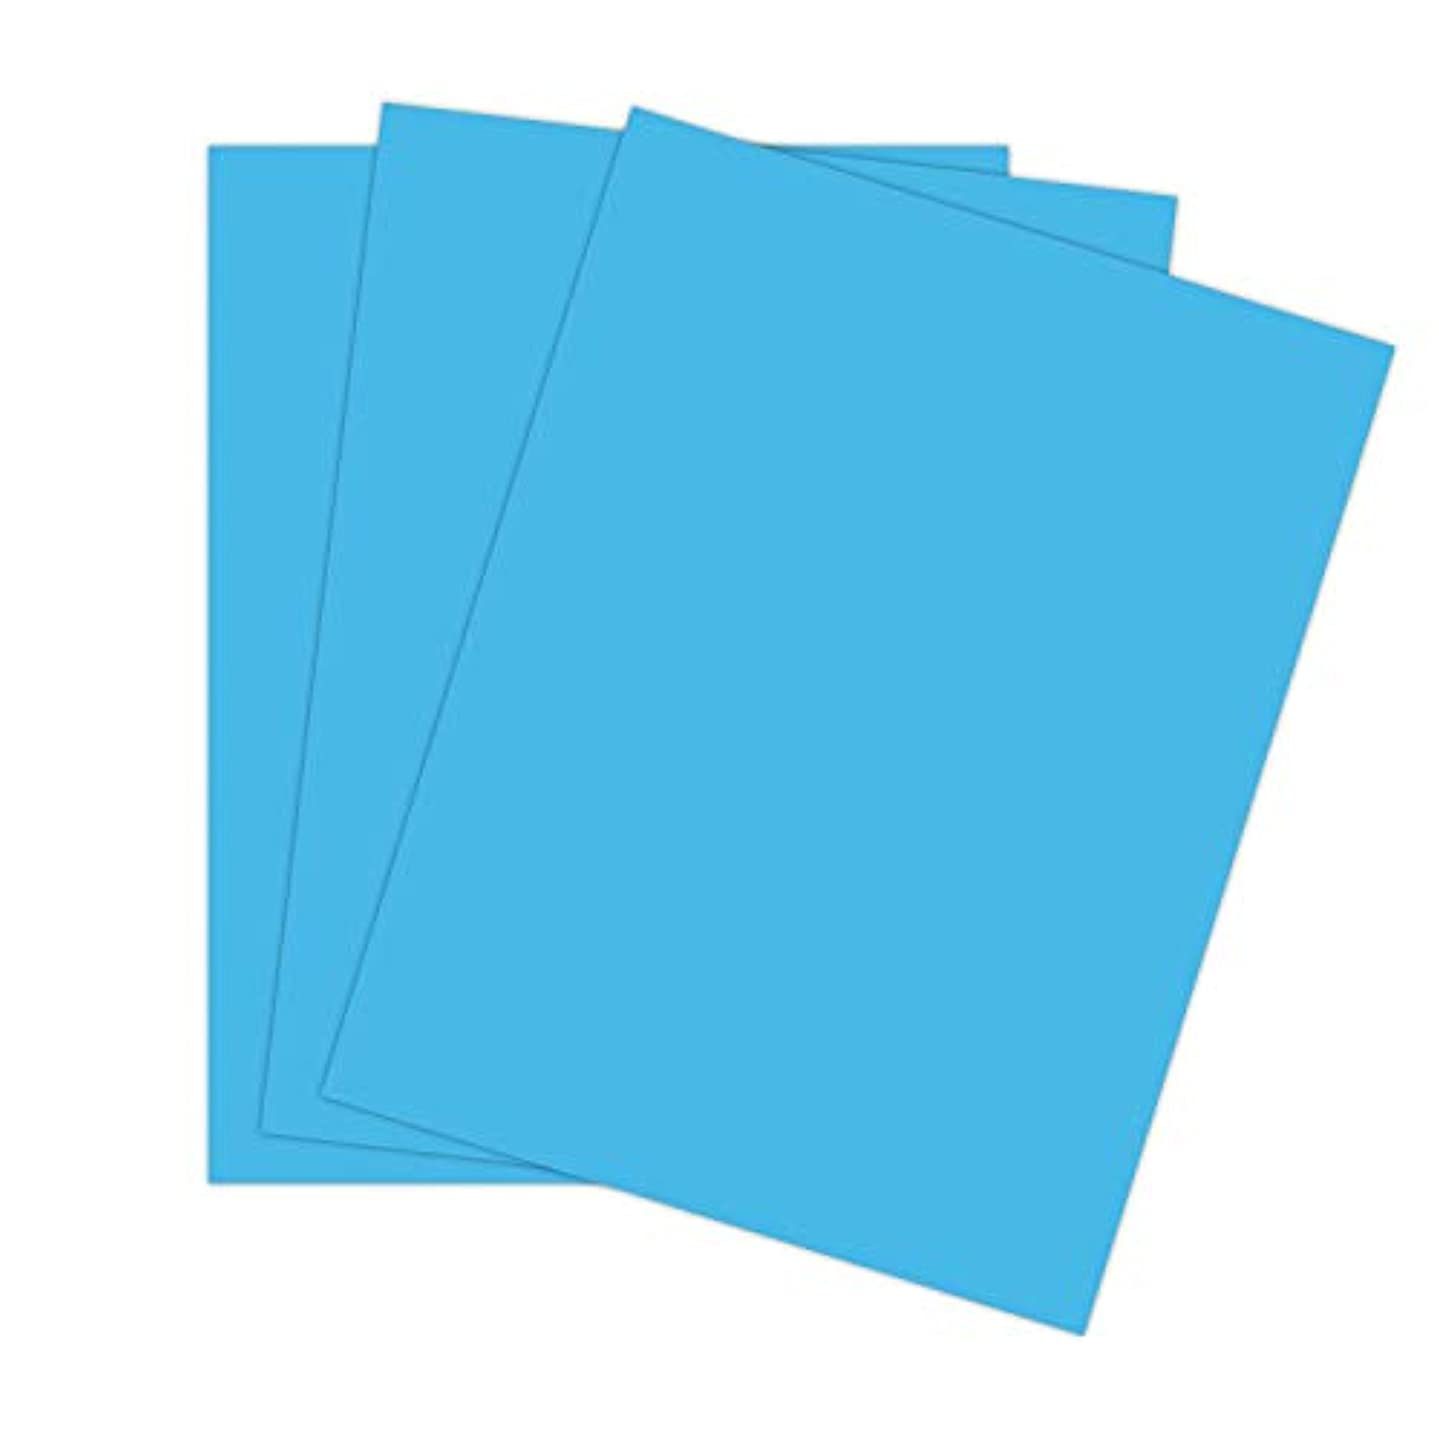 Cardstock Paper for Arts Crafts and Scrapbooking by The Stamps of Life - Pool Blue 8.5